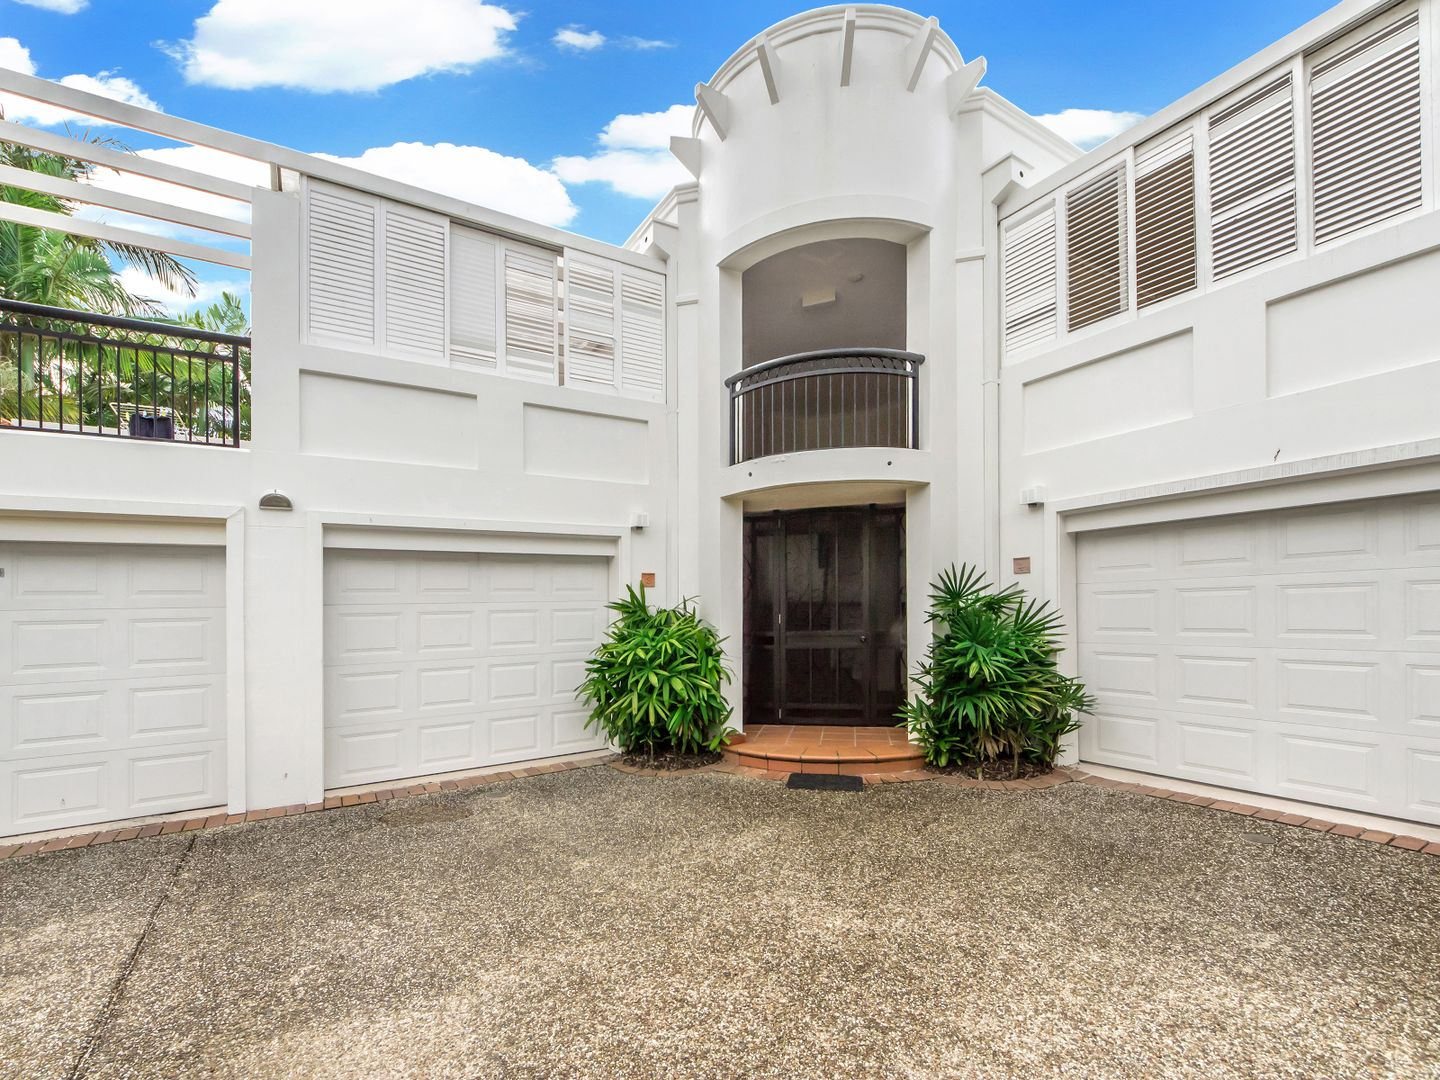 2/100 'Parkview Terrace' Cotlew Street East, Southport QLD 4215, Image 0